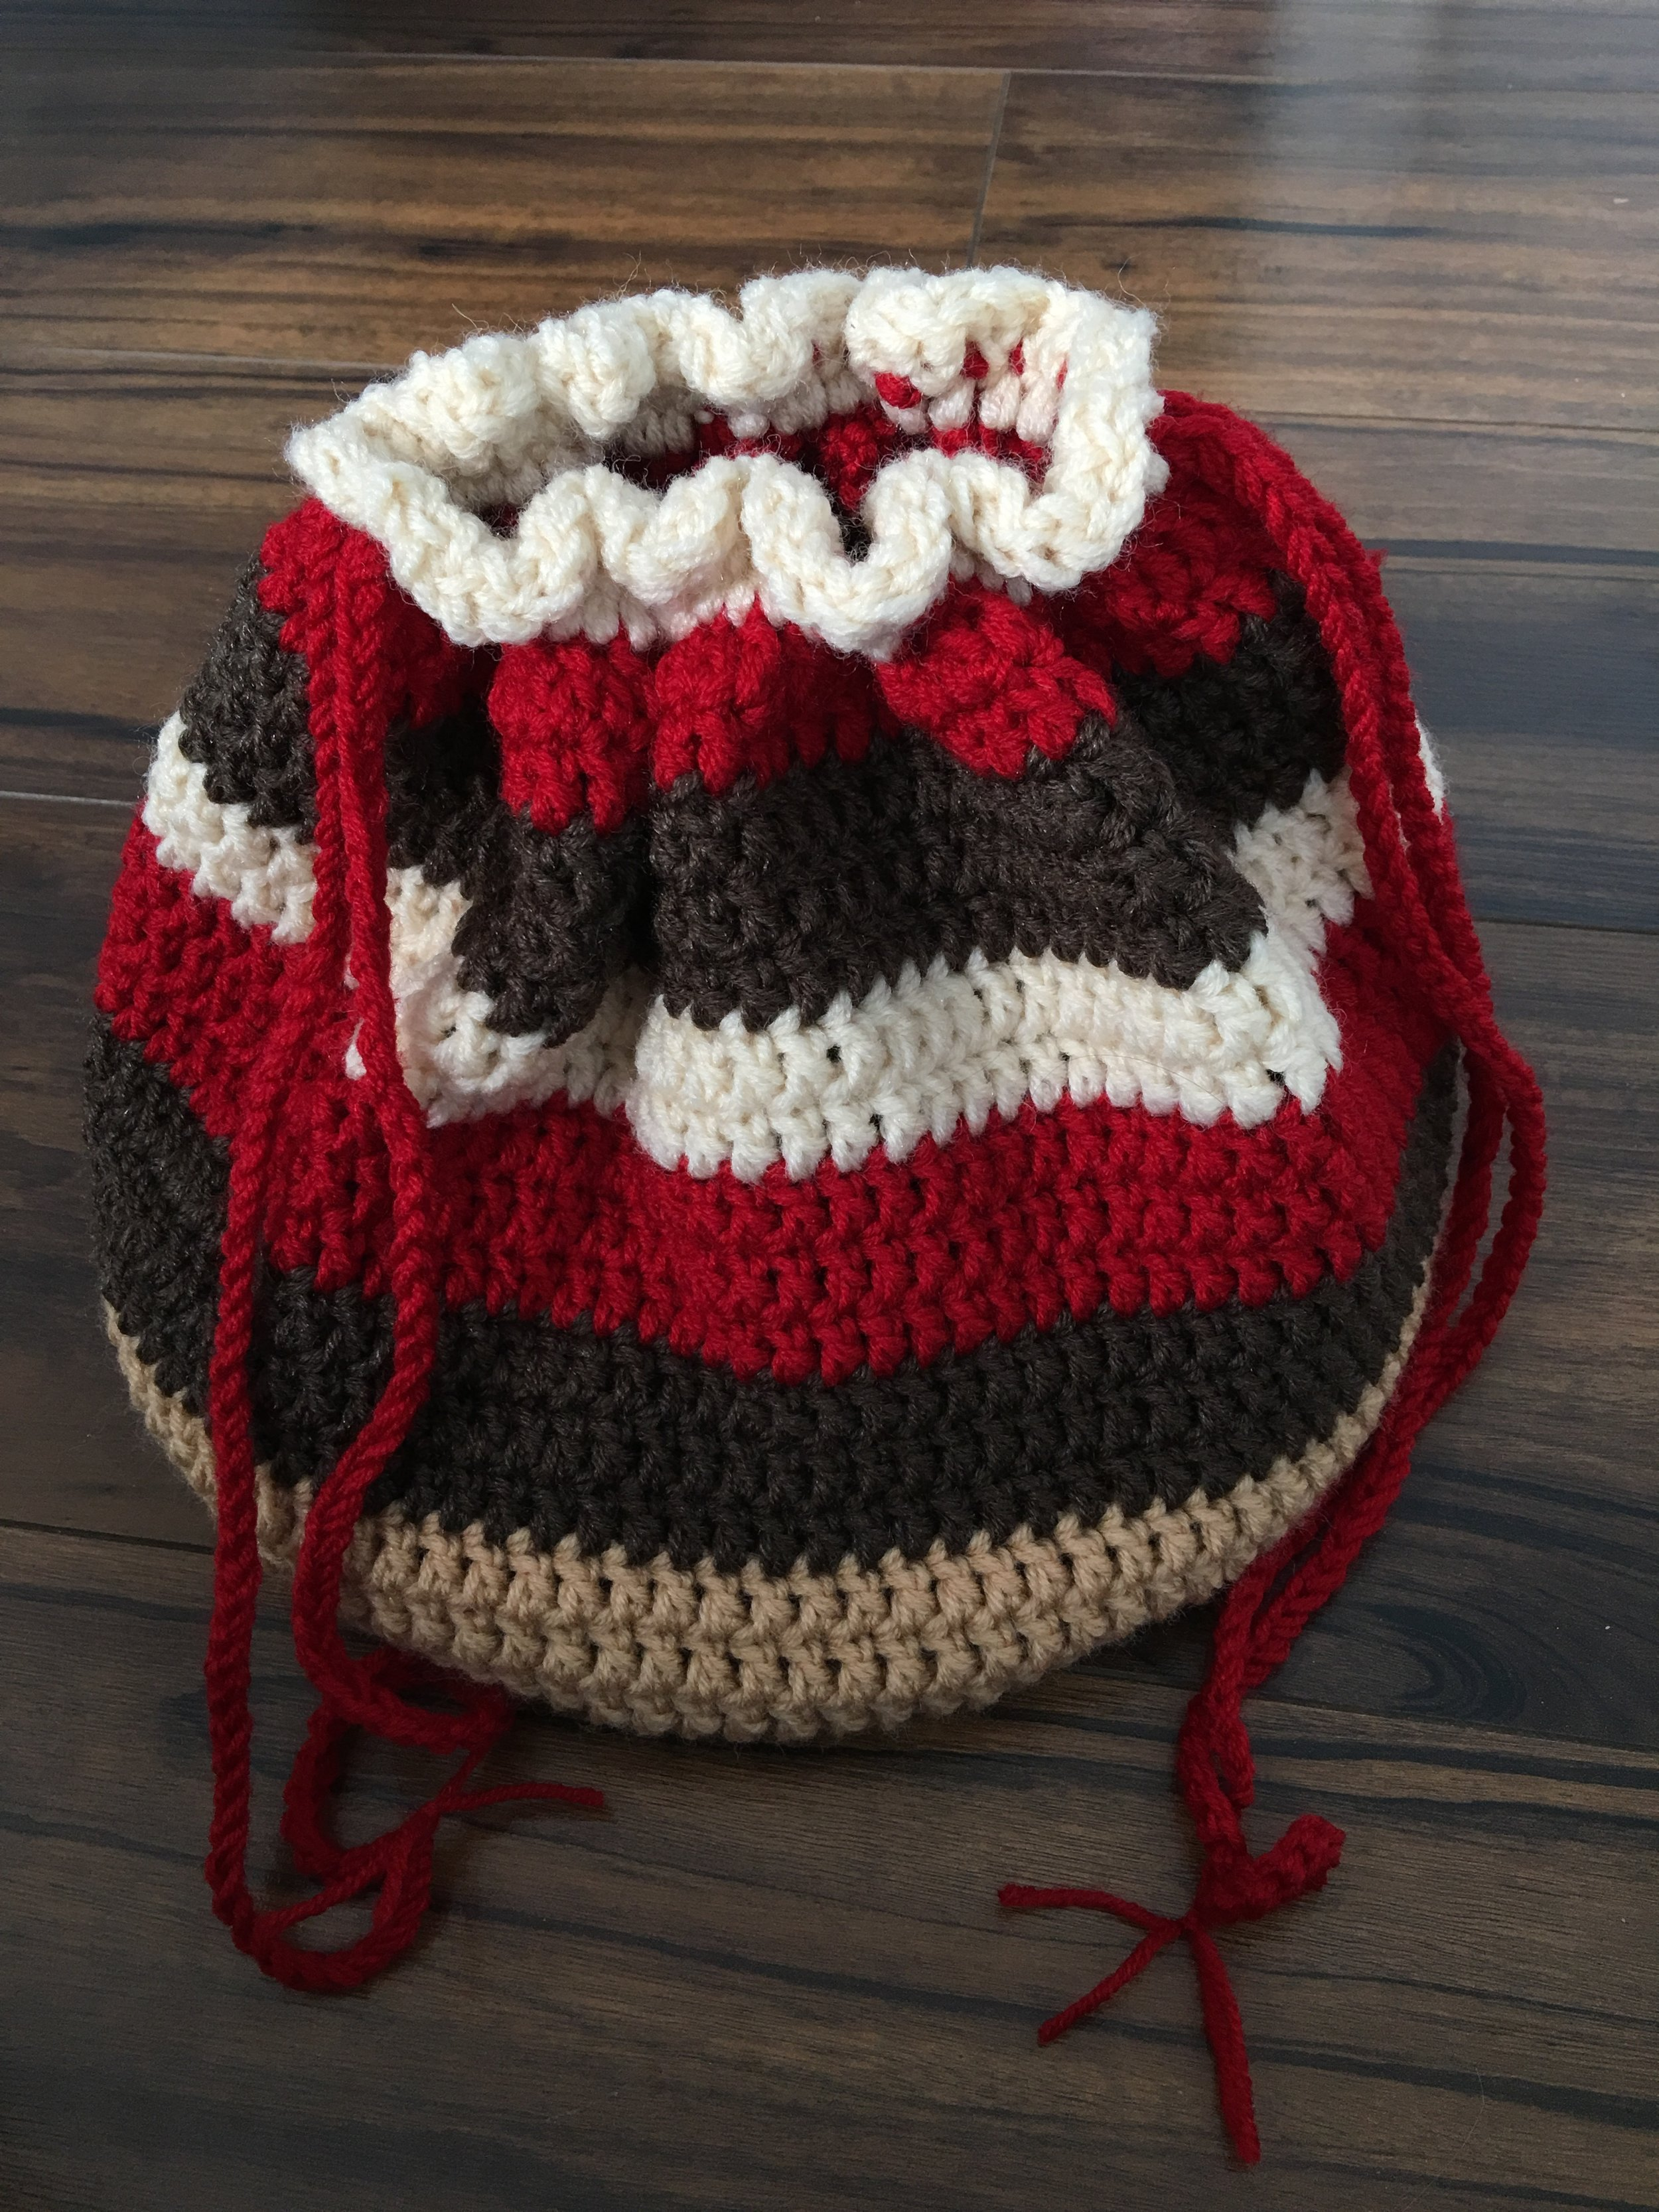 Simple Crochet Bag Free Pattern